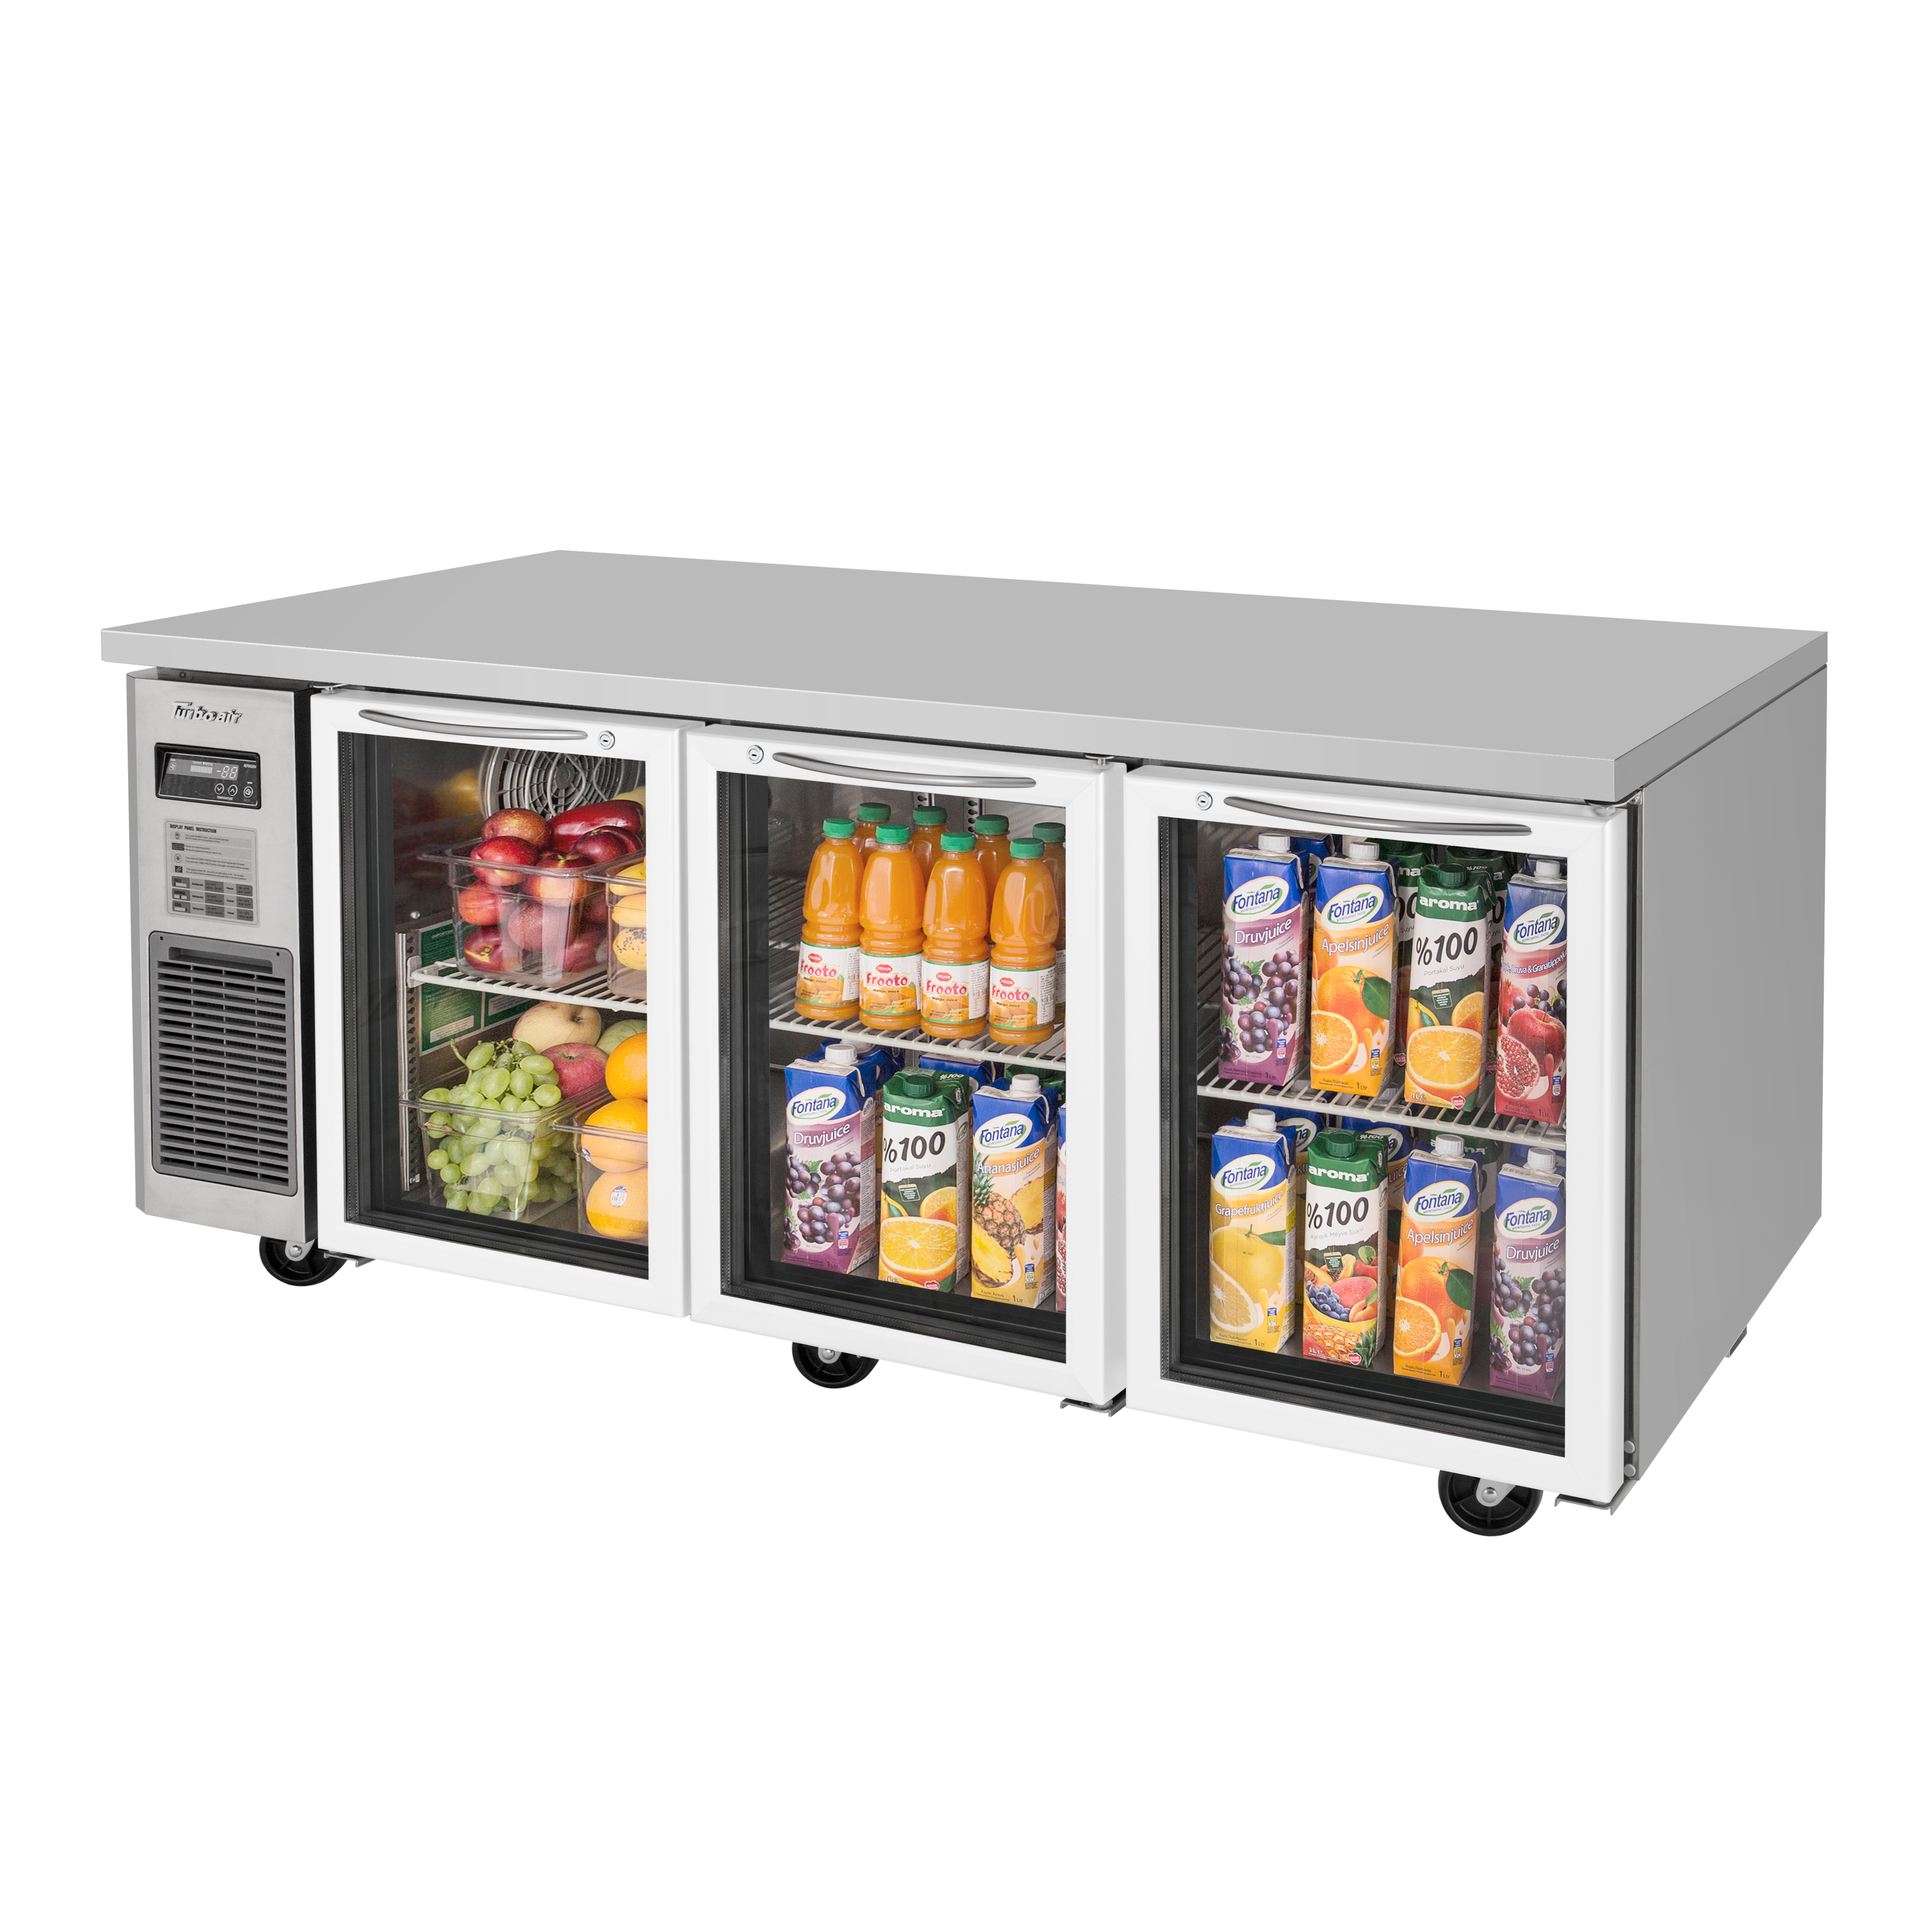 Turbo Air JUR-72-G-N refrigerator, undercounter, reach-in